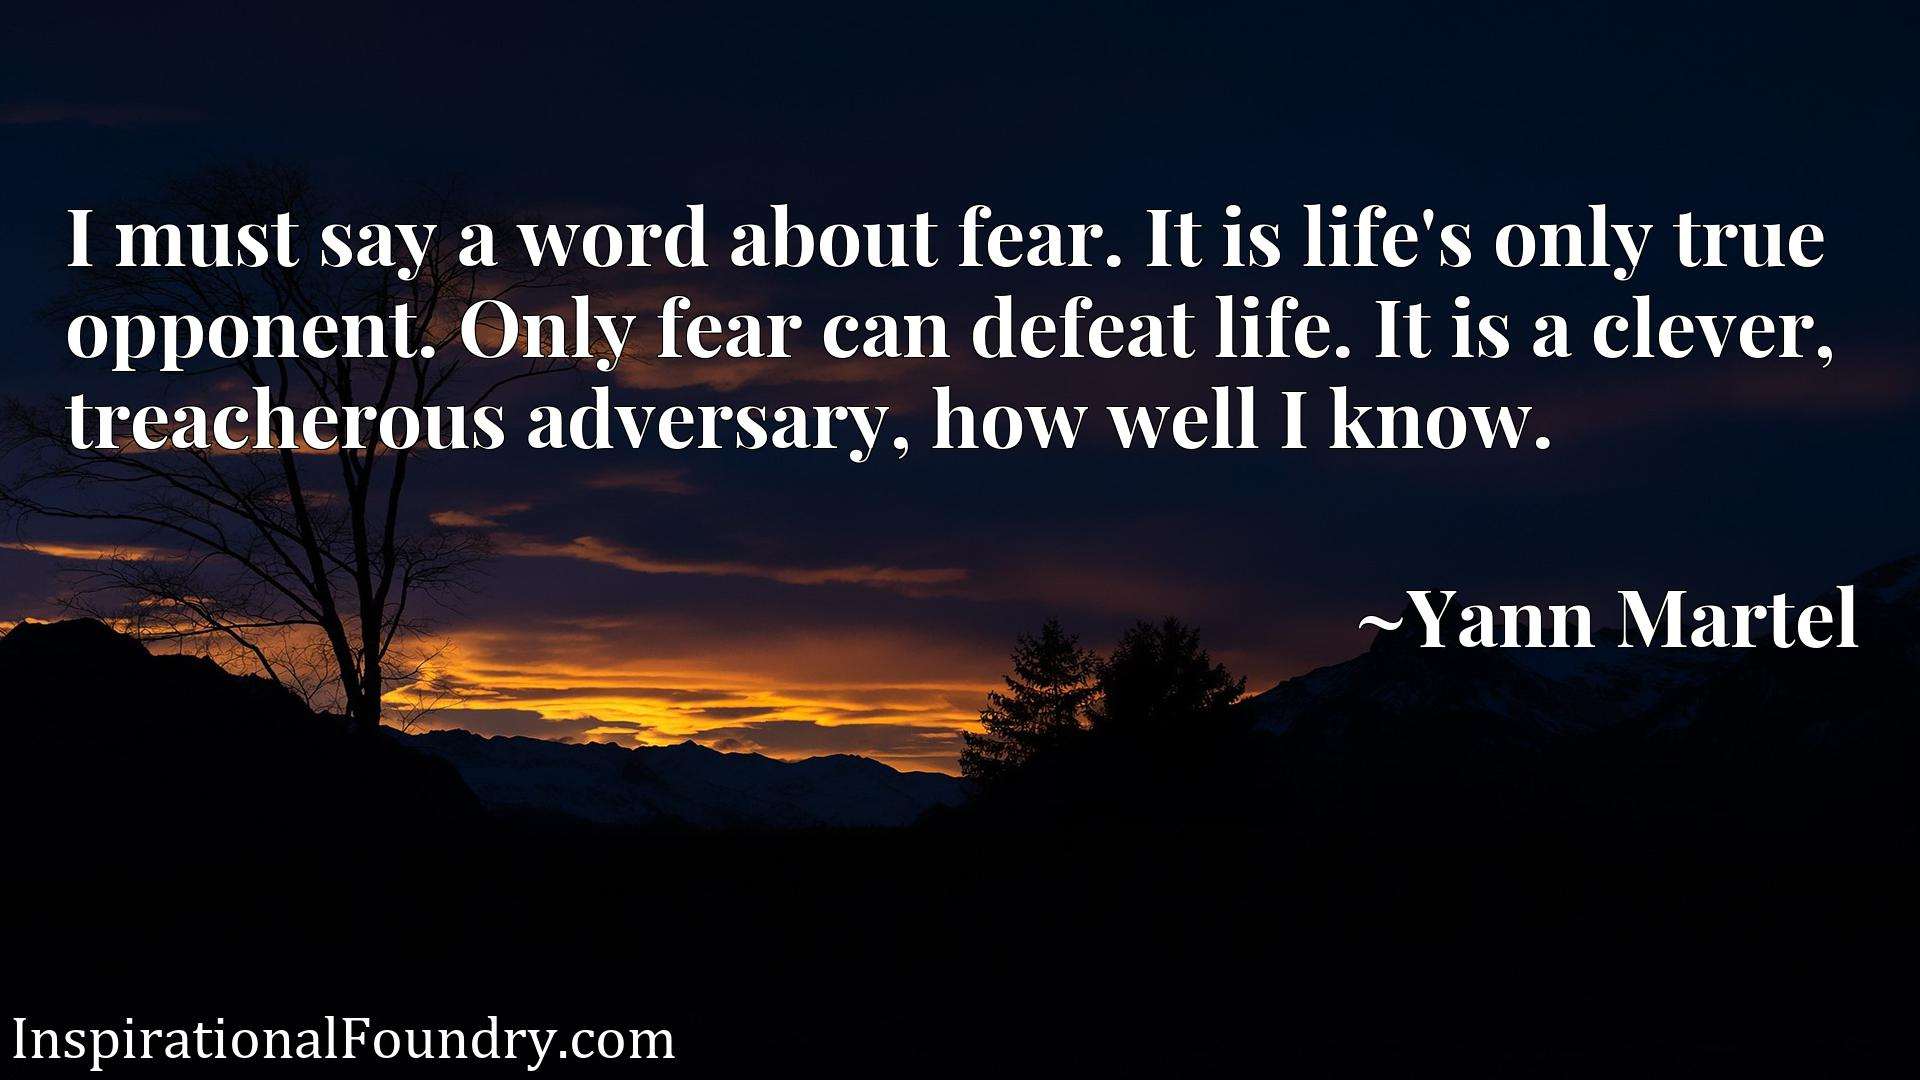 I must say a word about fear. It is life's only true opponent. Only fear can defeat life. It is a clever, treacherous adversary, how well I know.